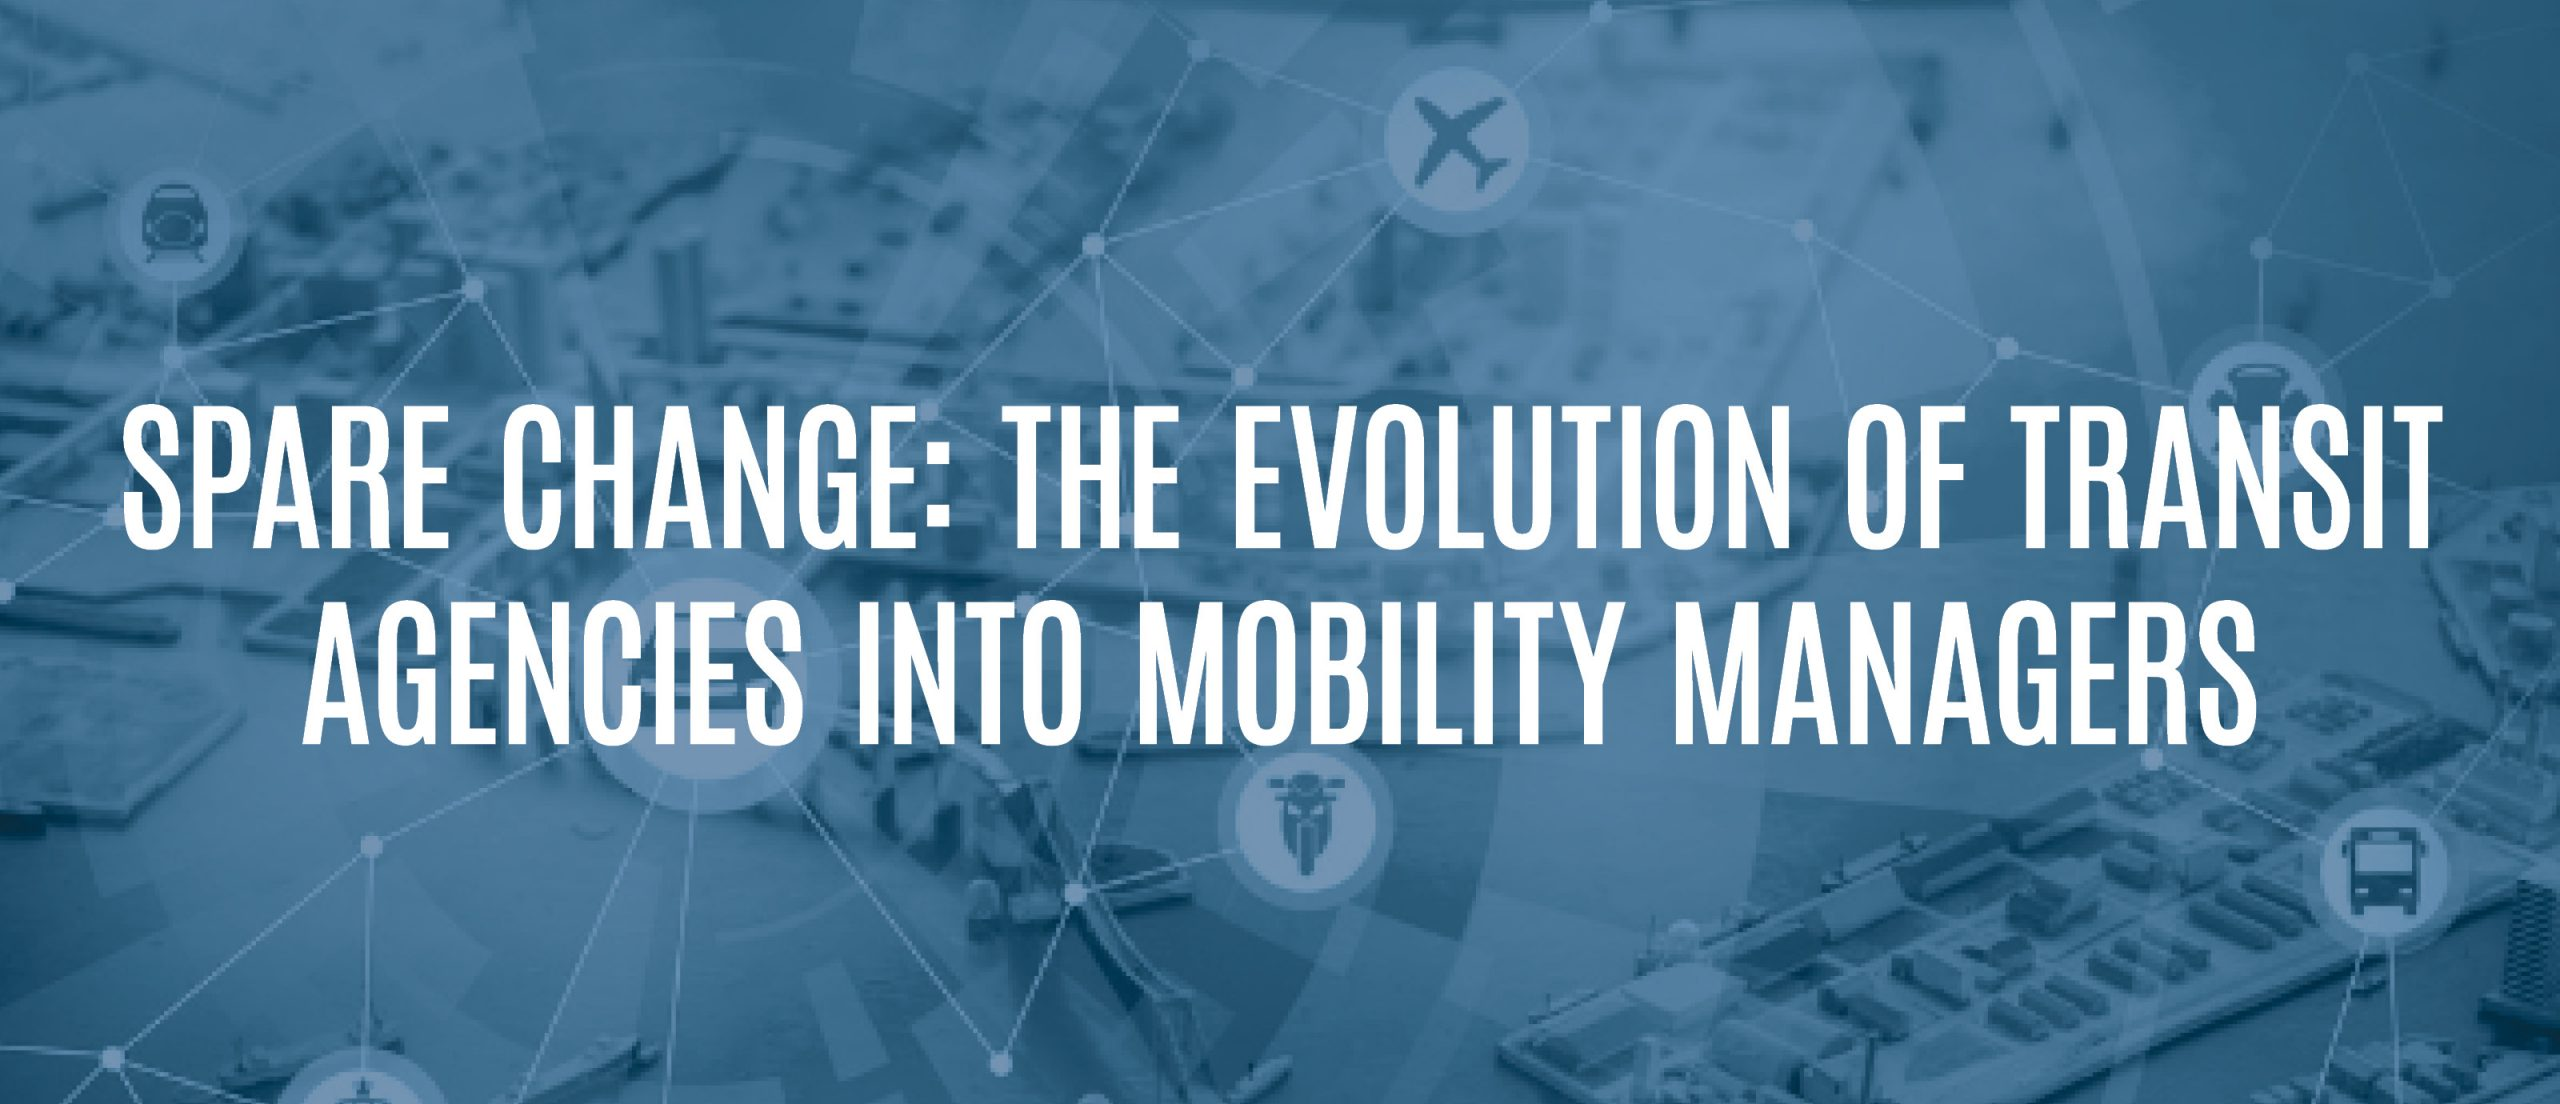 Blog Title - Spare change: the evolution of transit agencies into mobility managers